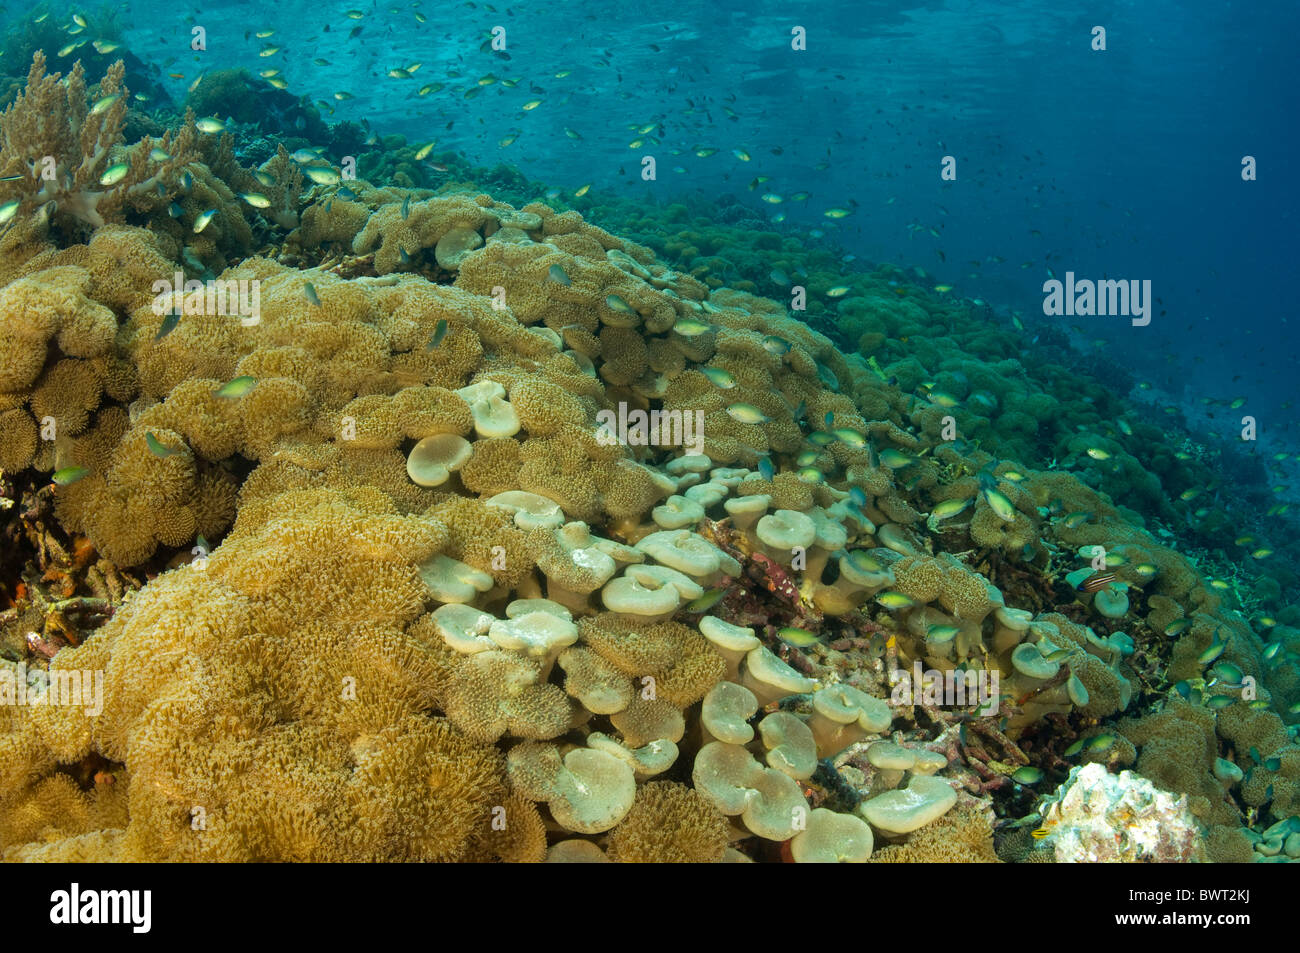 Reef scenic with leather softcorals Raja Ampat Indonesia - Stock Image